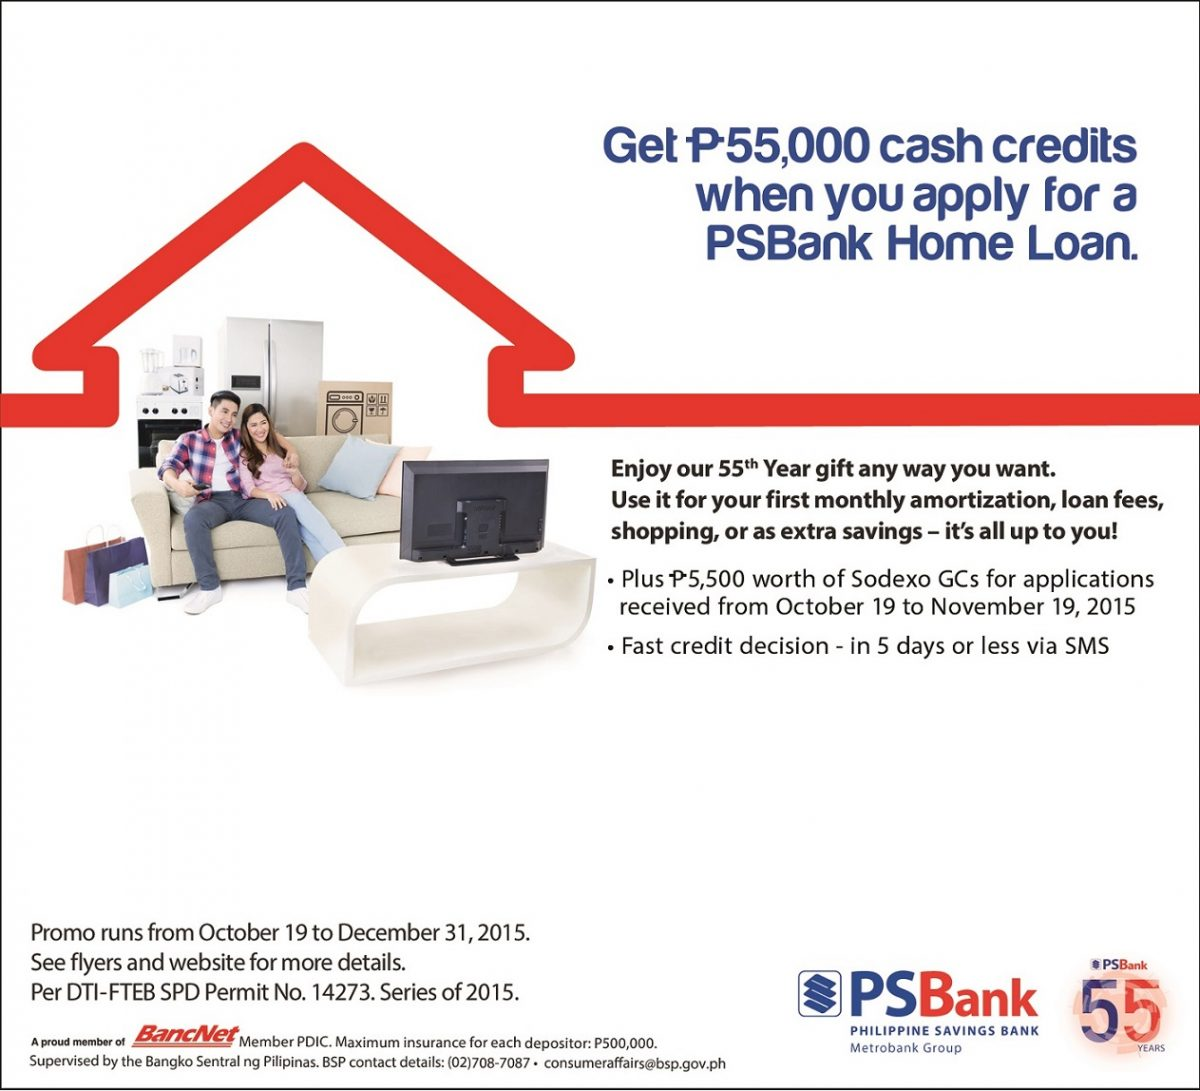 psbank housing loan - 28 images - psbank home, personal ...